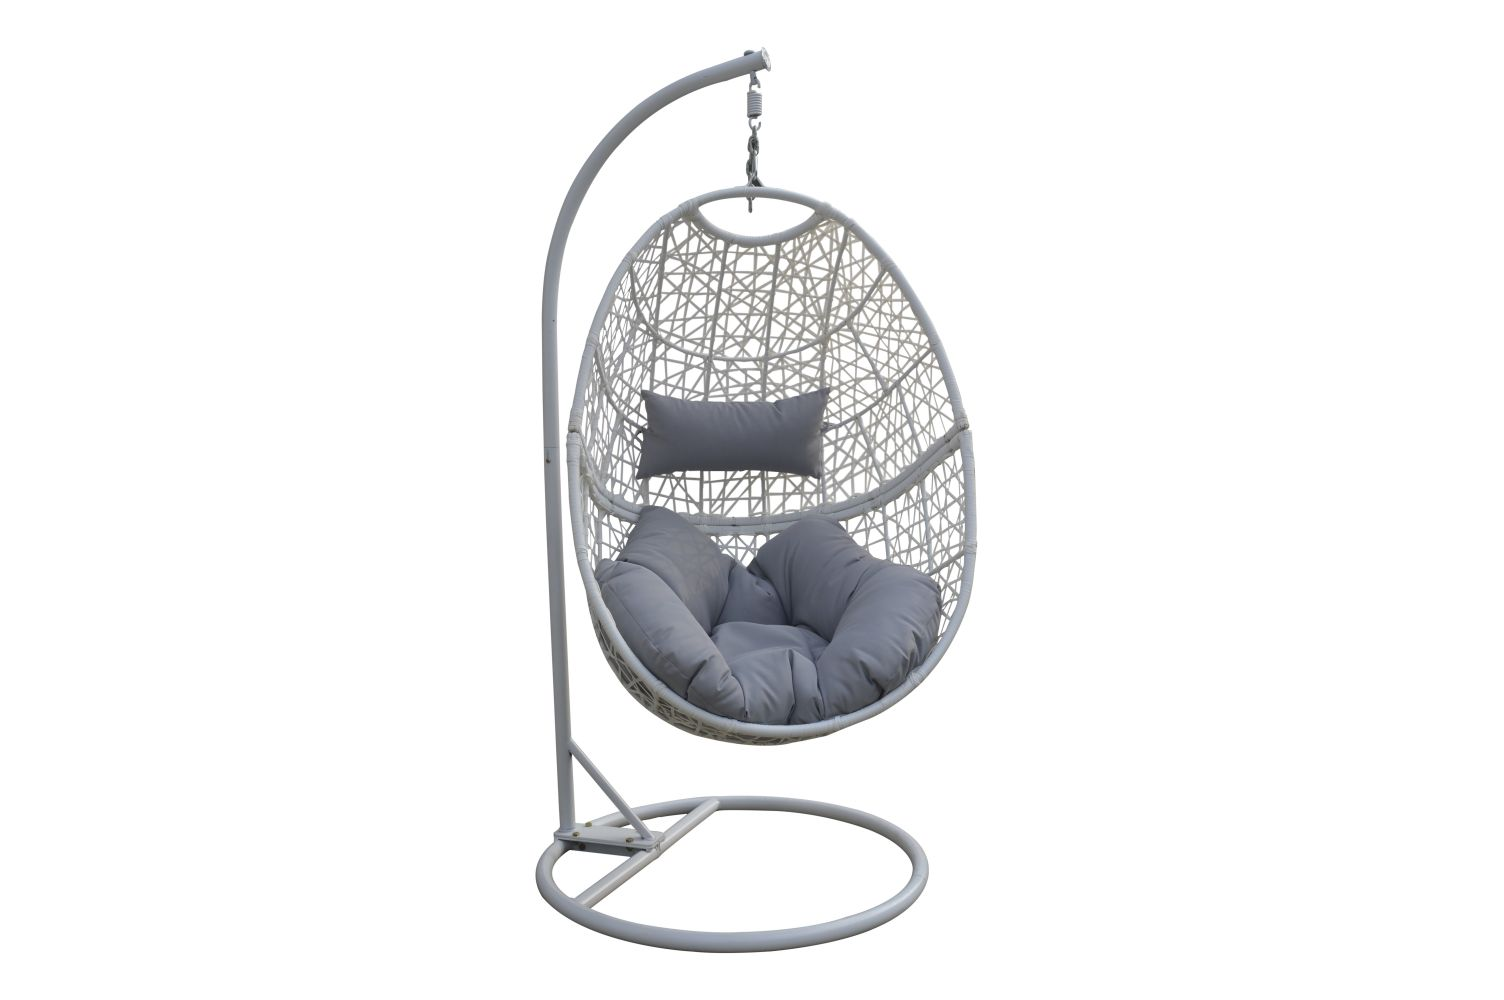 """""""The Chelsea Garden Co"""" - Brand New Rattan Garden Furniture & Patio Heaters: Dining Sets, Sofa Sets, Sun Loungers, Egg Chairs and More"""